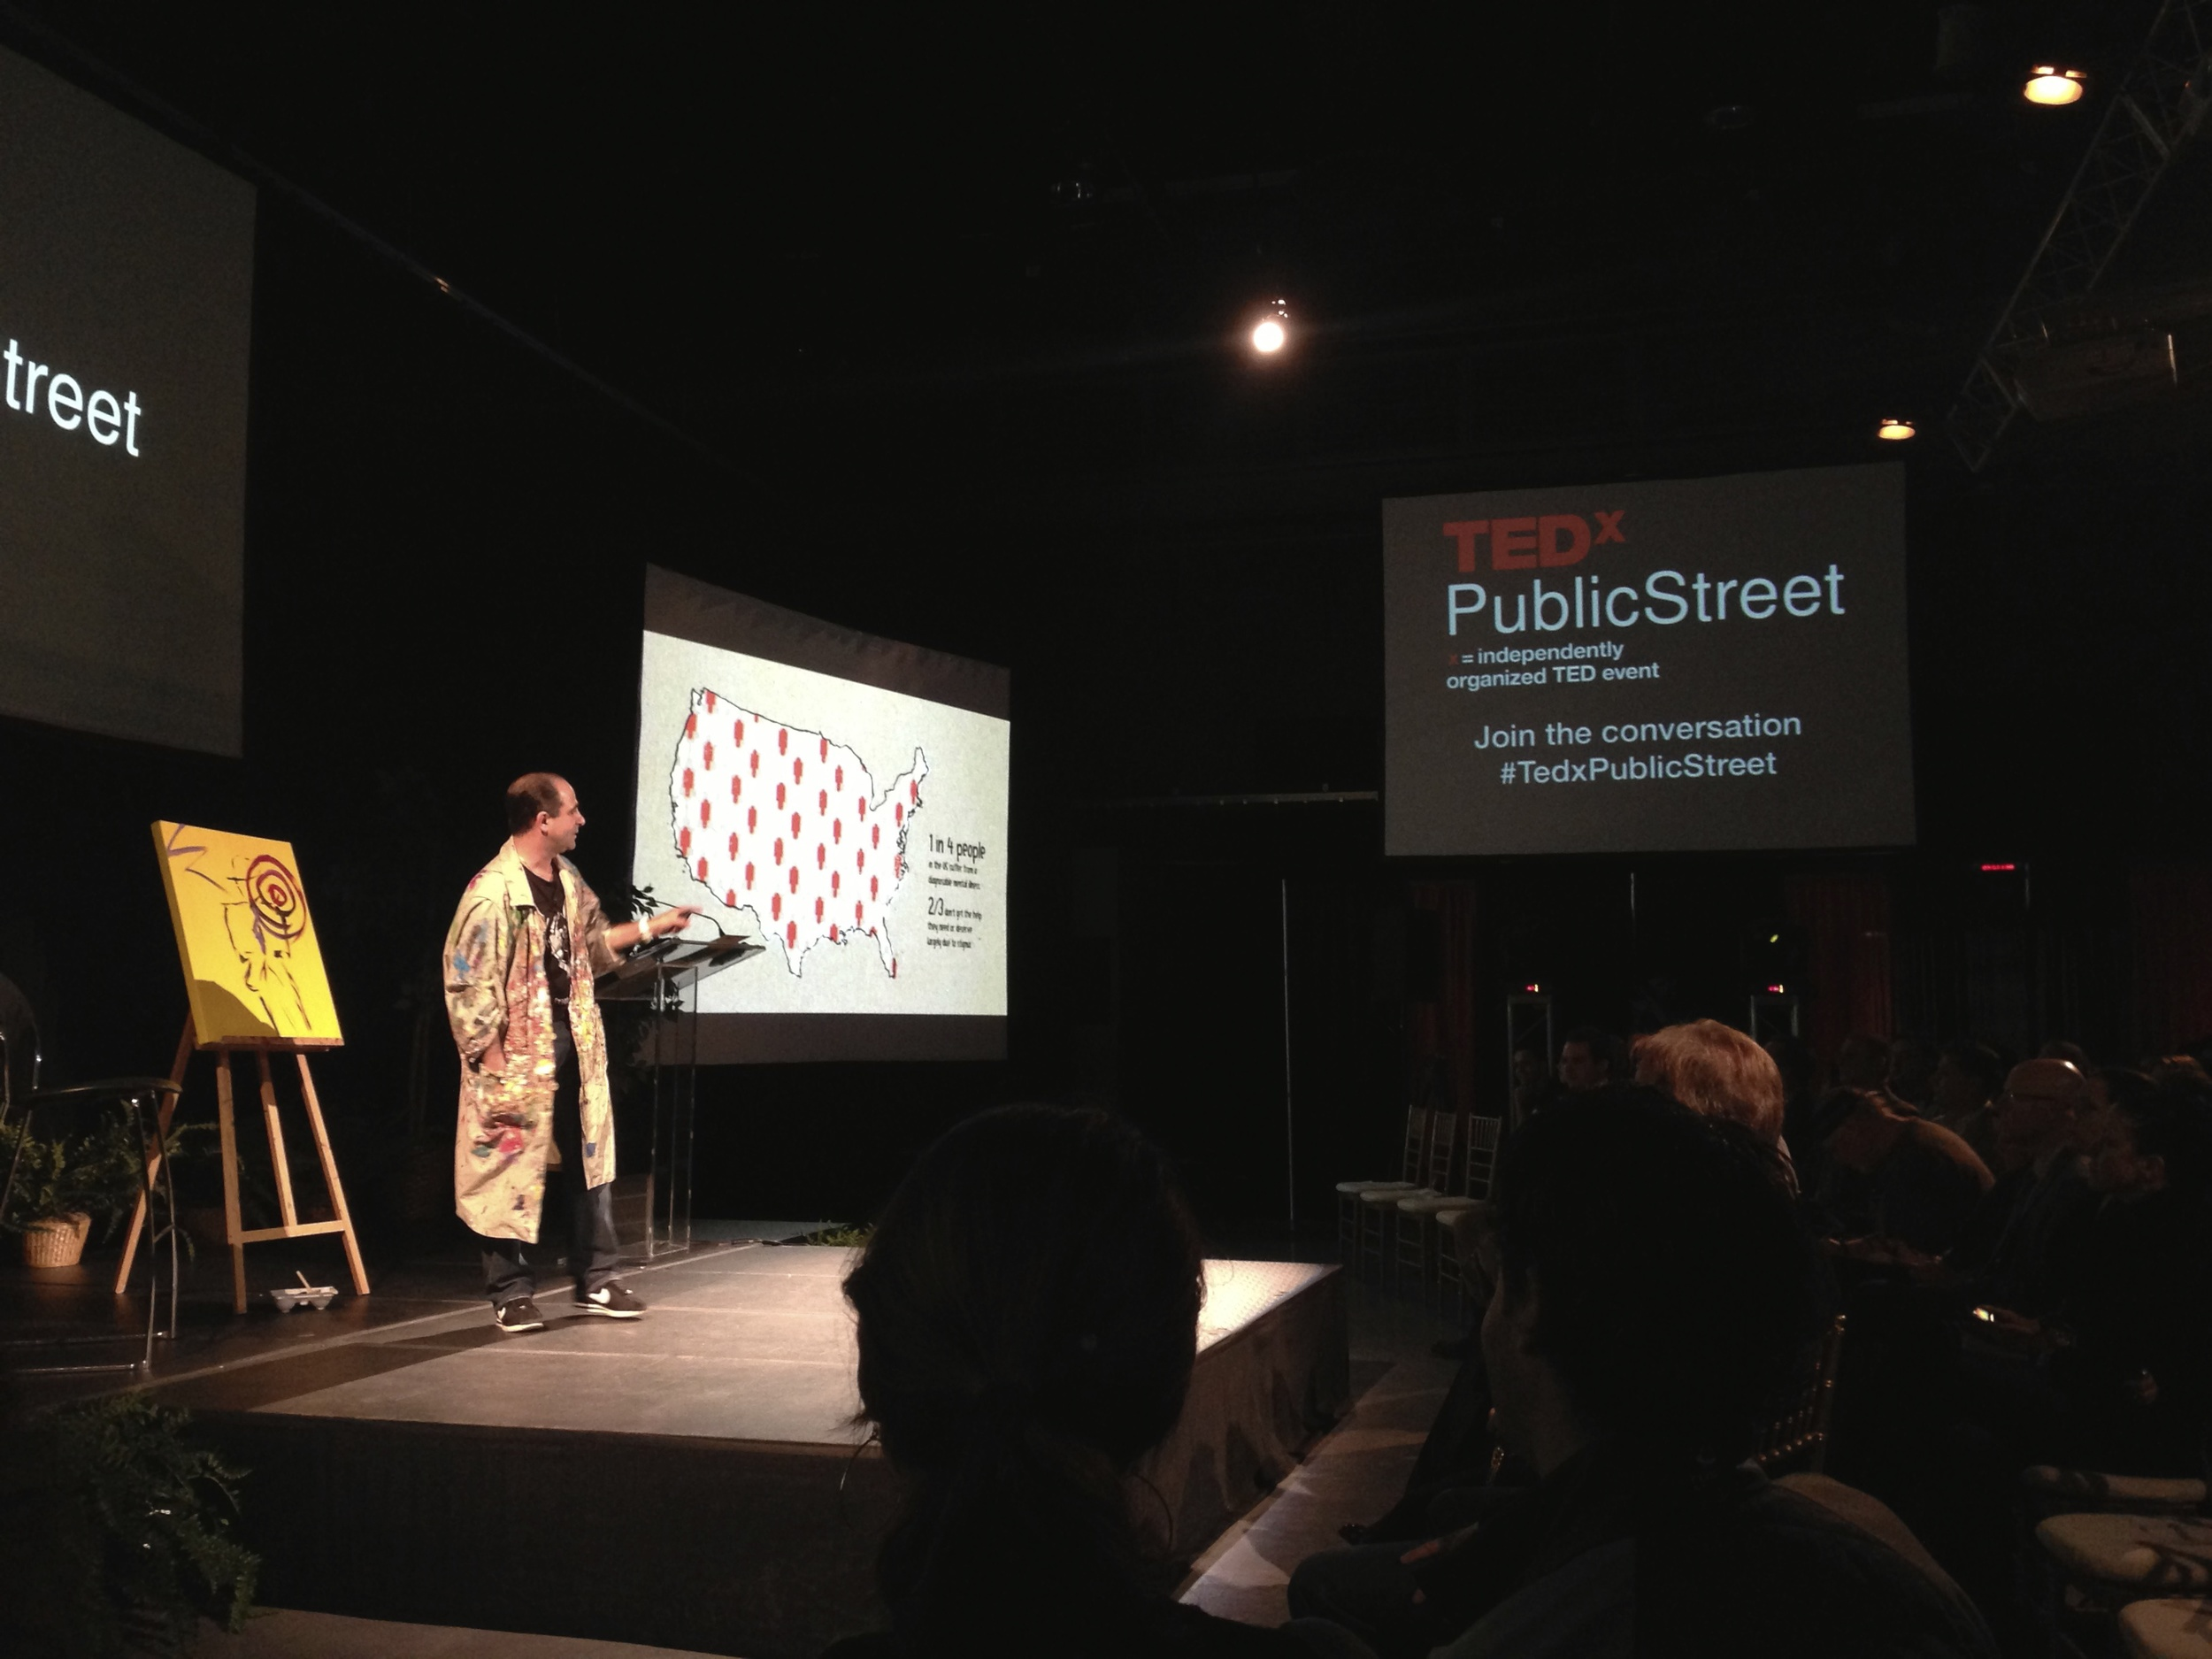 Founder Jeff Sparr's speech at TEDxPublicStreet in 2013